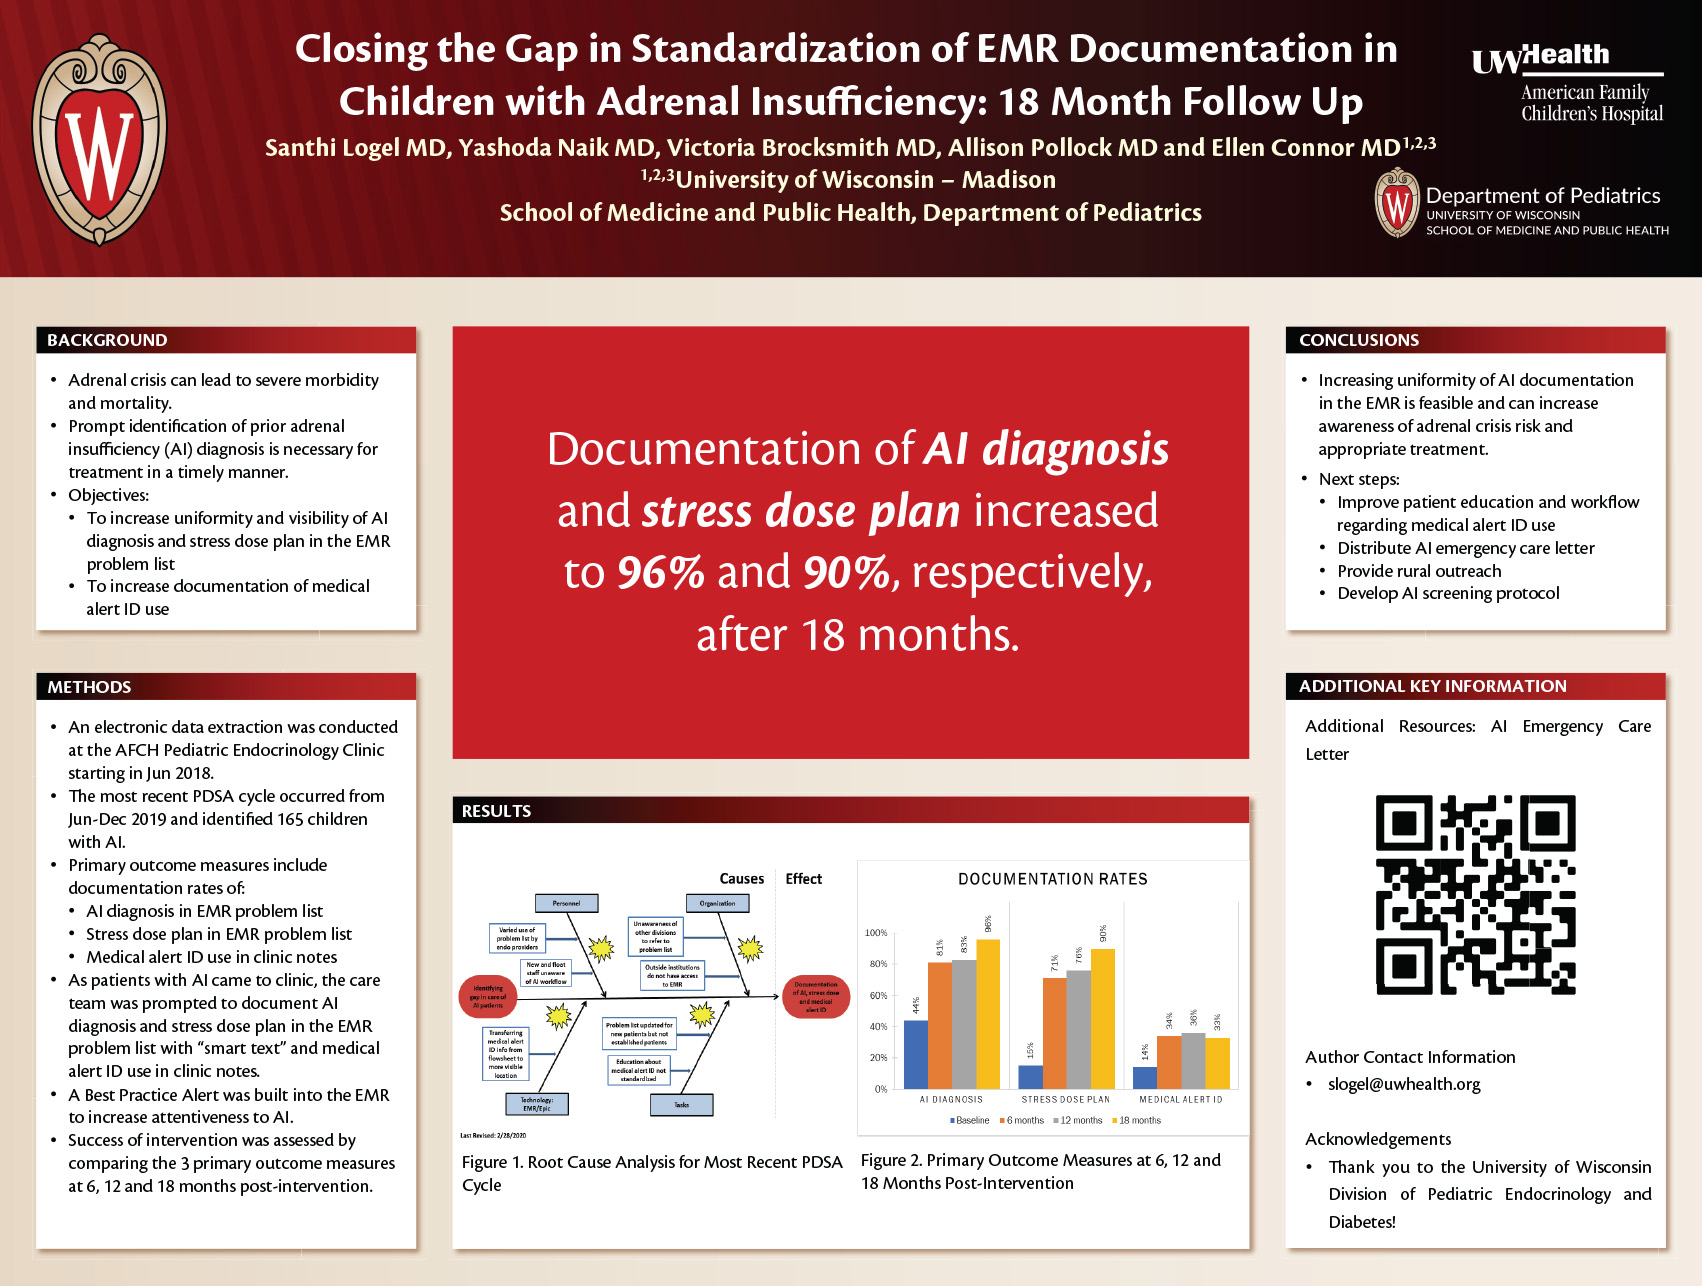 Closing the Gap in Standardization of EMR Documentation in Children with Adrenal Insufficiency: 18 Month Follow Up poster image